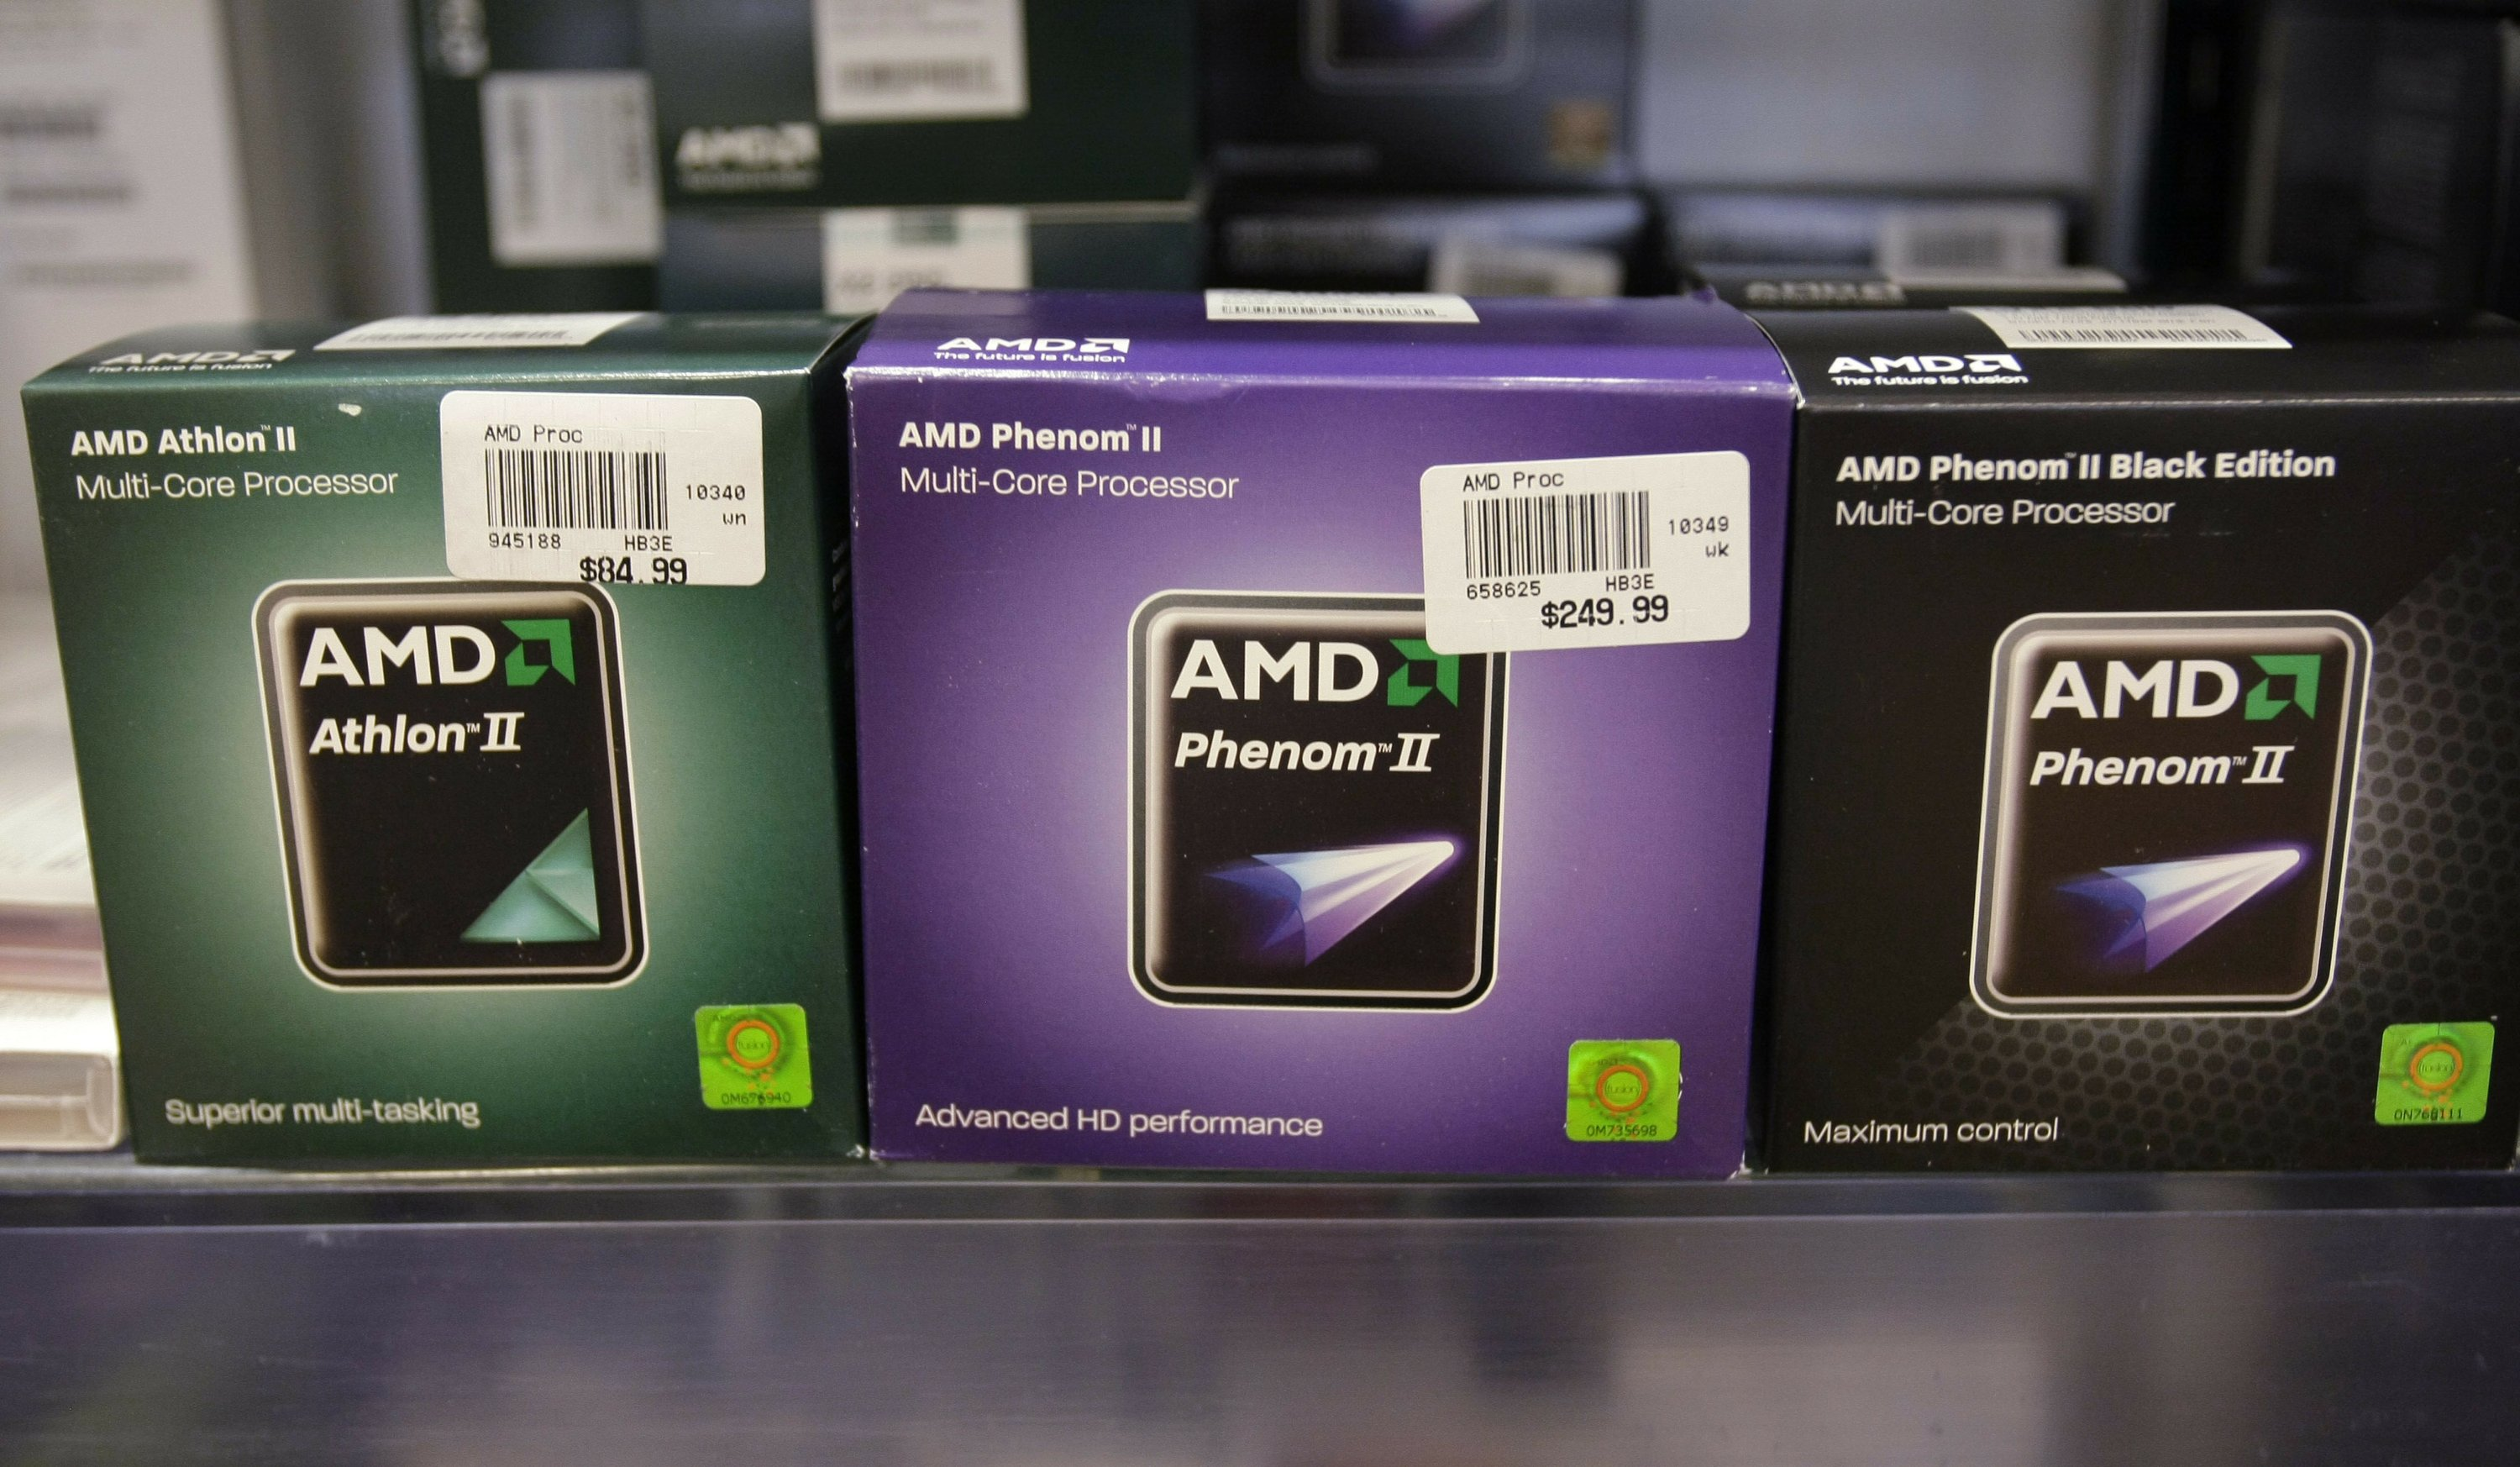 As world goes online in pandemic, another mammoth chip deal